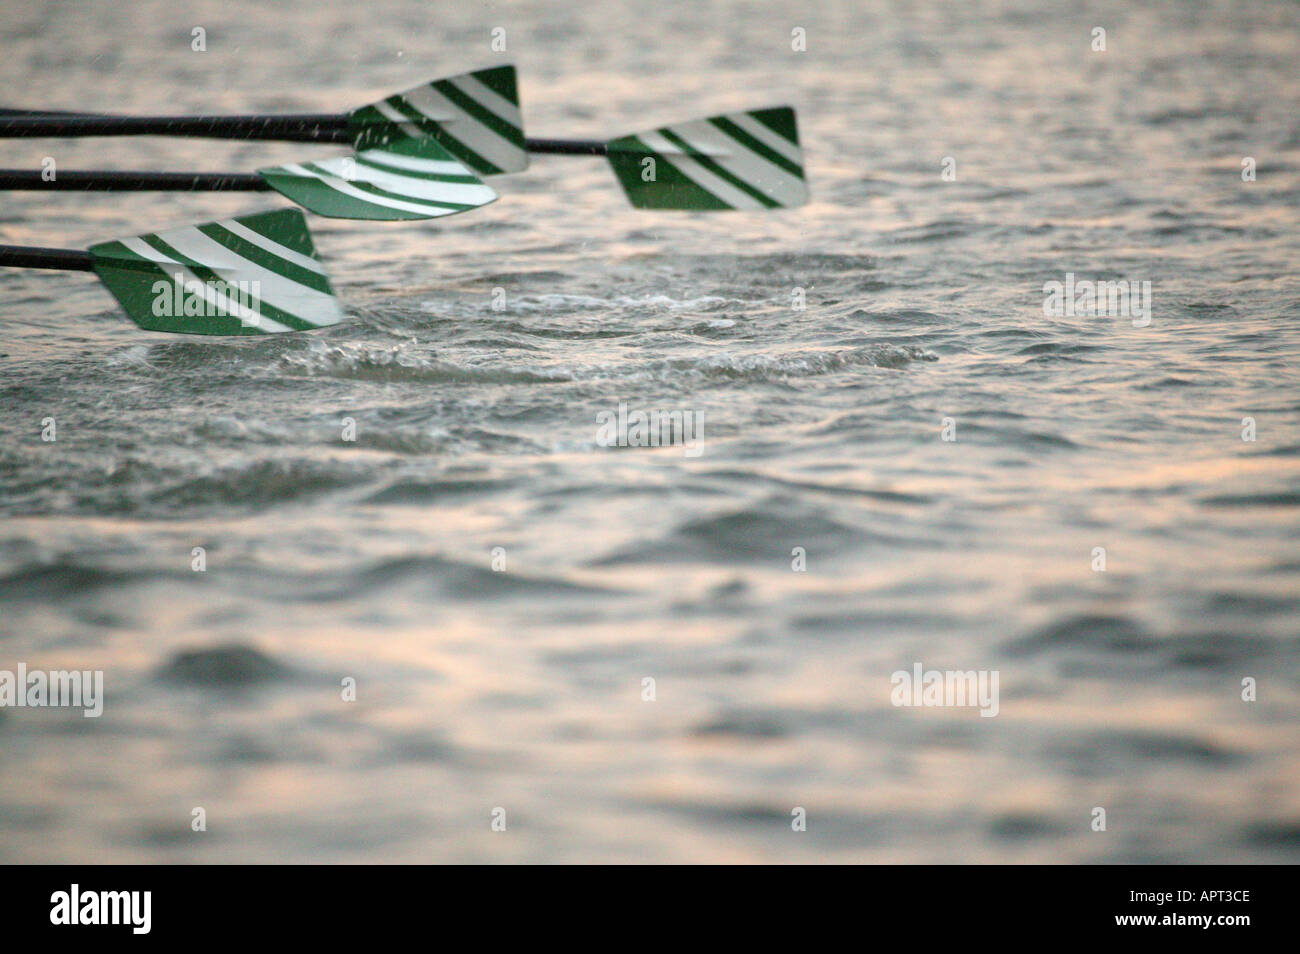 Green and white rowing boat blades in action - Stock Image